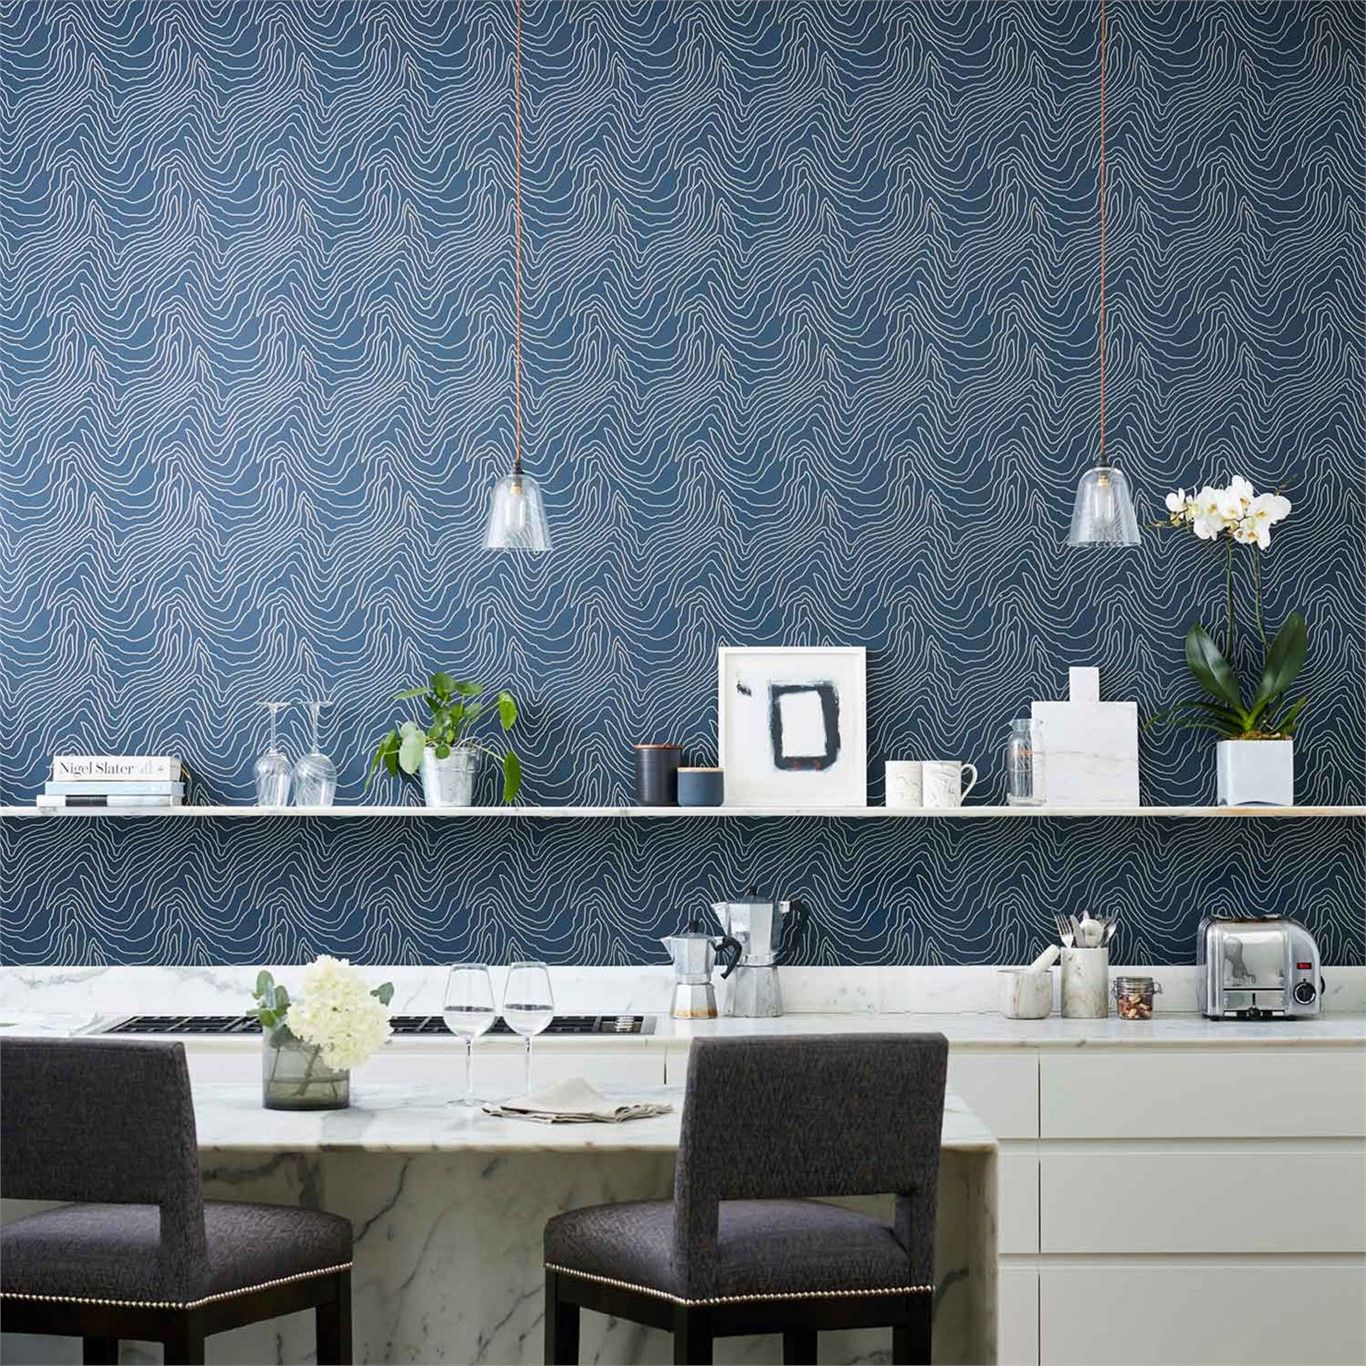 Products | Harlequin - Designer Fabrics and Wallpapers | Formation ...